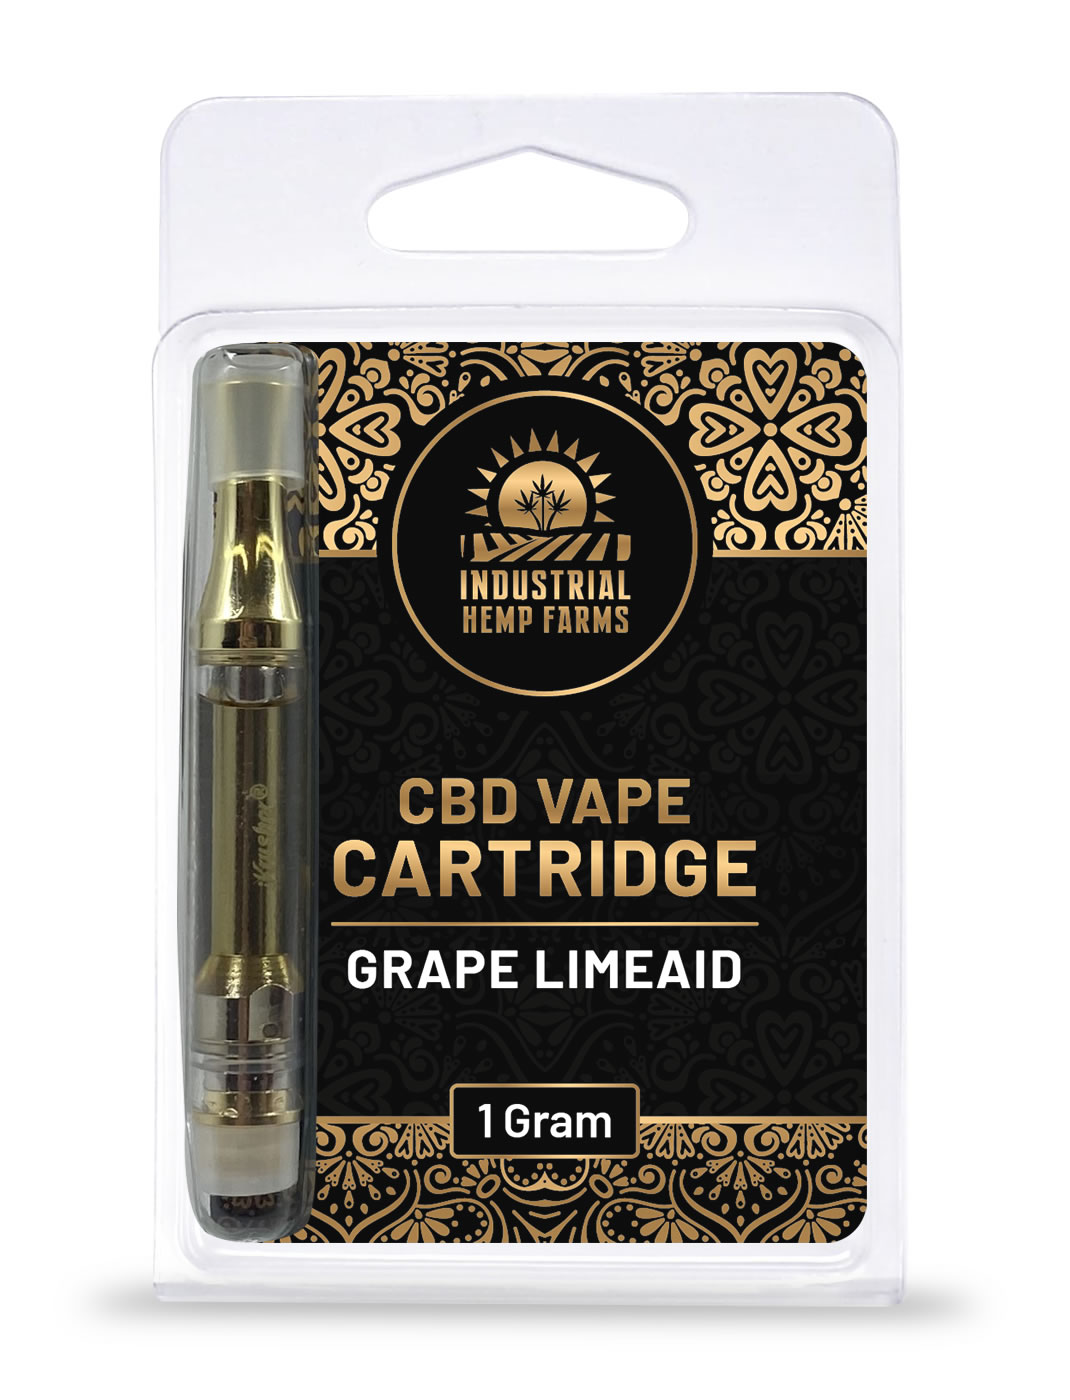 Grape limeaid cbd vape pen cart